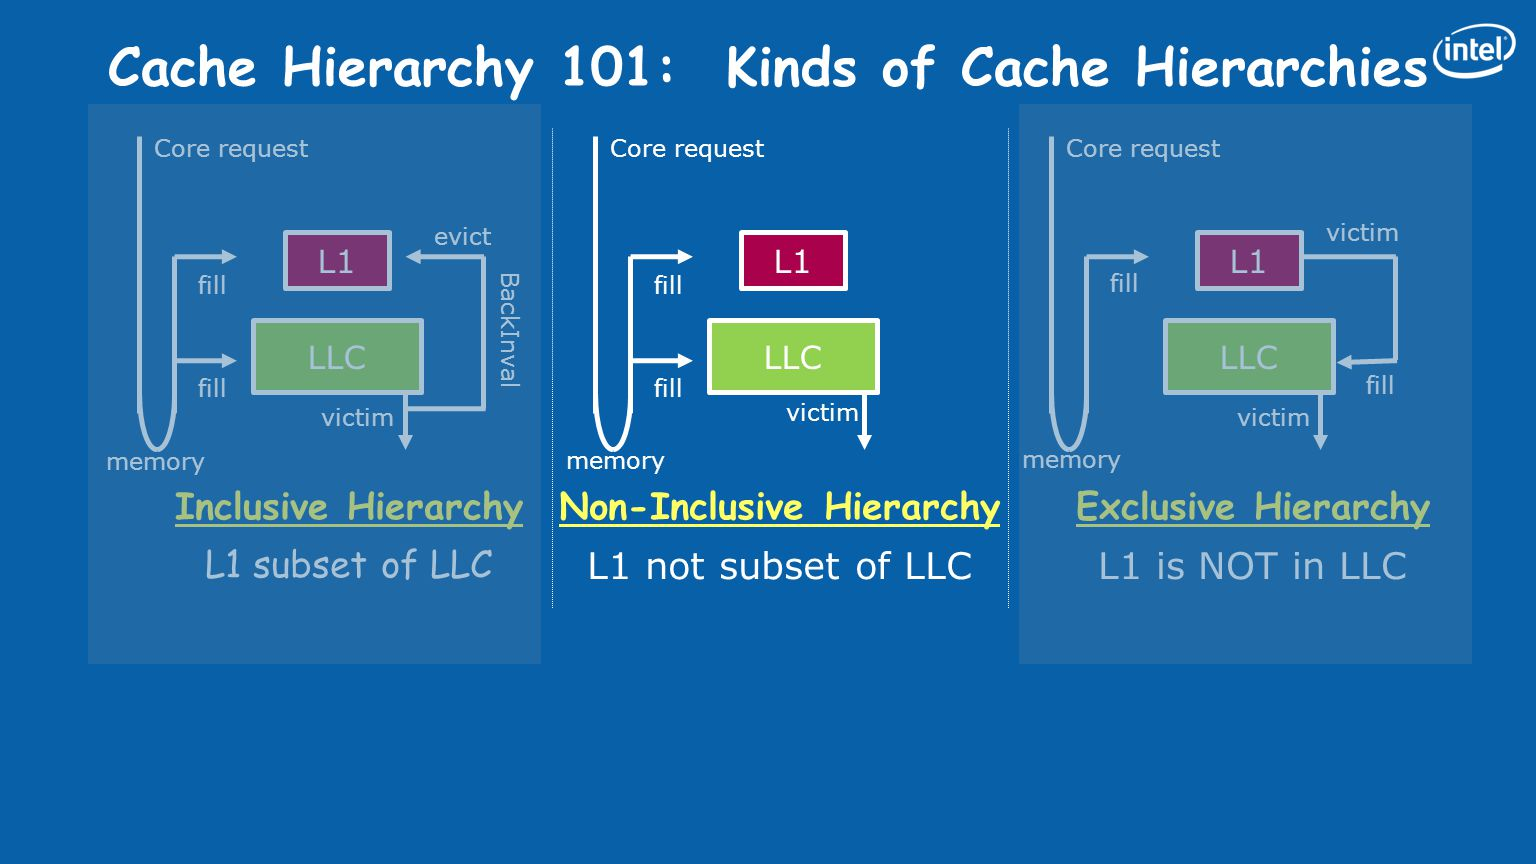 BackInval Cache Hierarchy 101: Kinds of Cache Hierarchies Inclusive Hierarchy L1 subset of LLC Non-Inclusive Hierarchy L1 not subset of LLC L1 LLC victim fill L1 LLC fill Core request memory evict victim